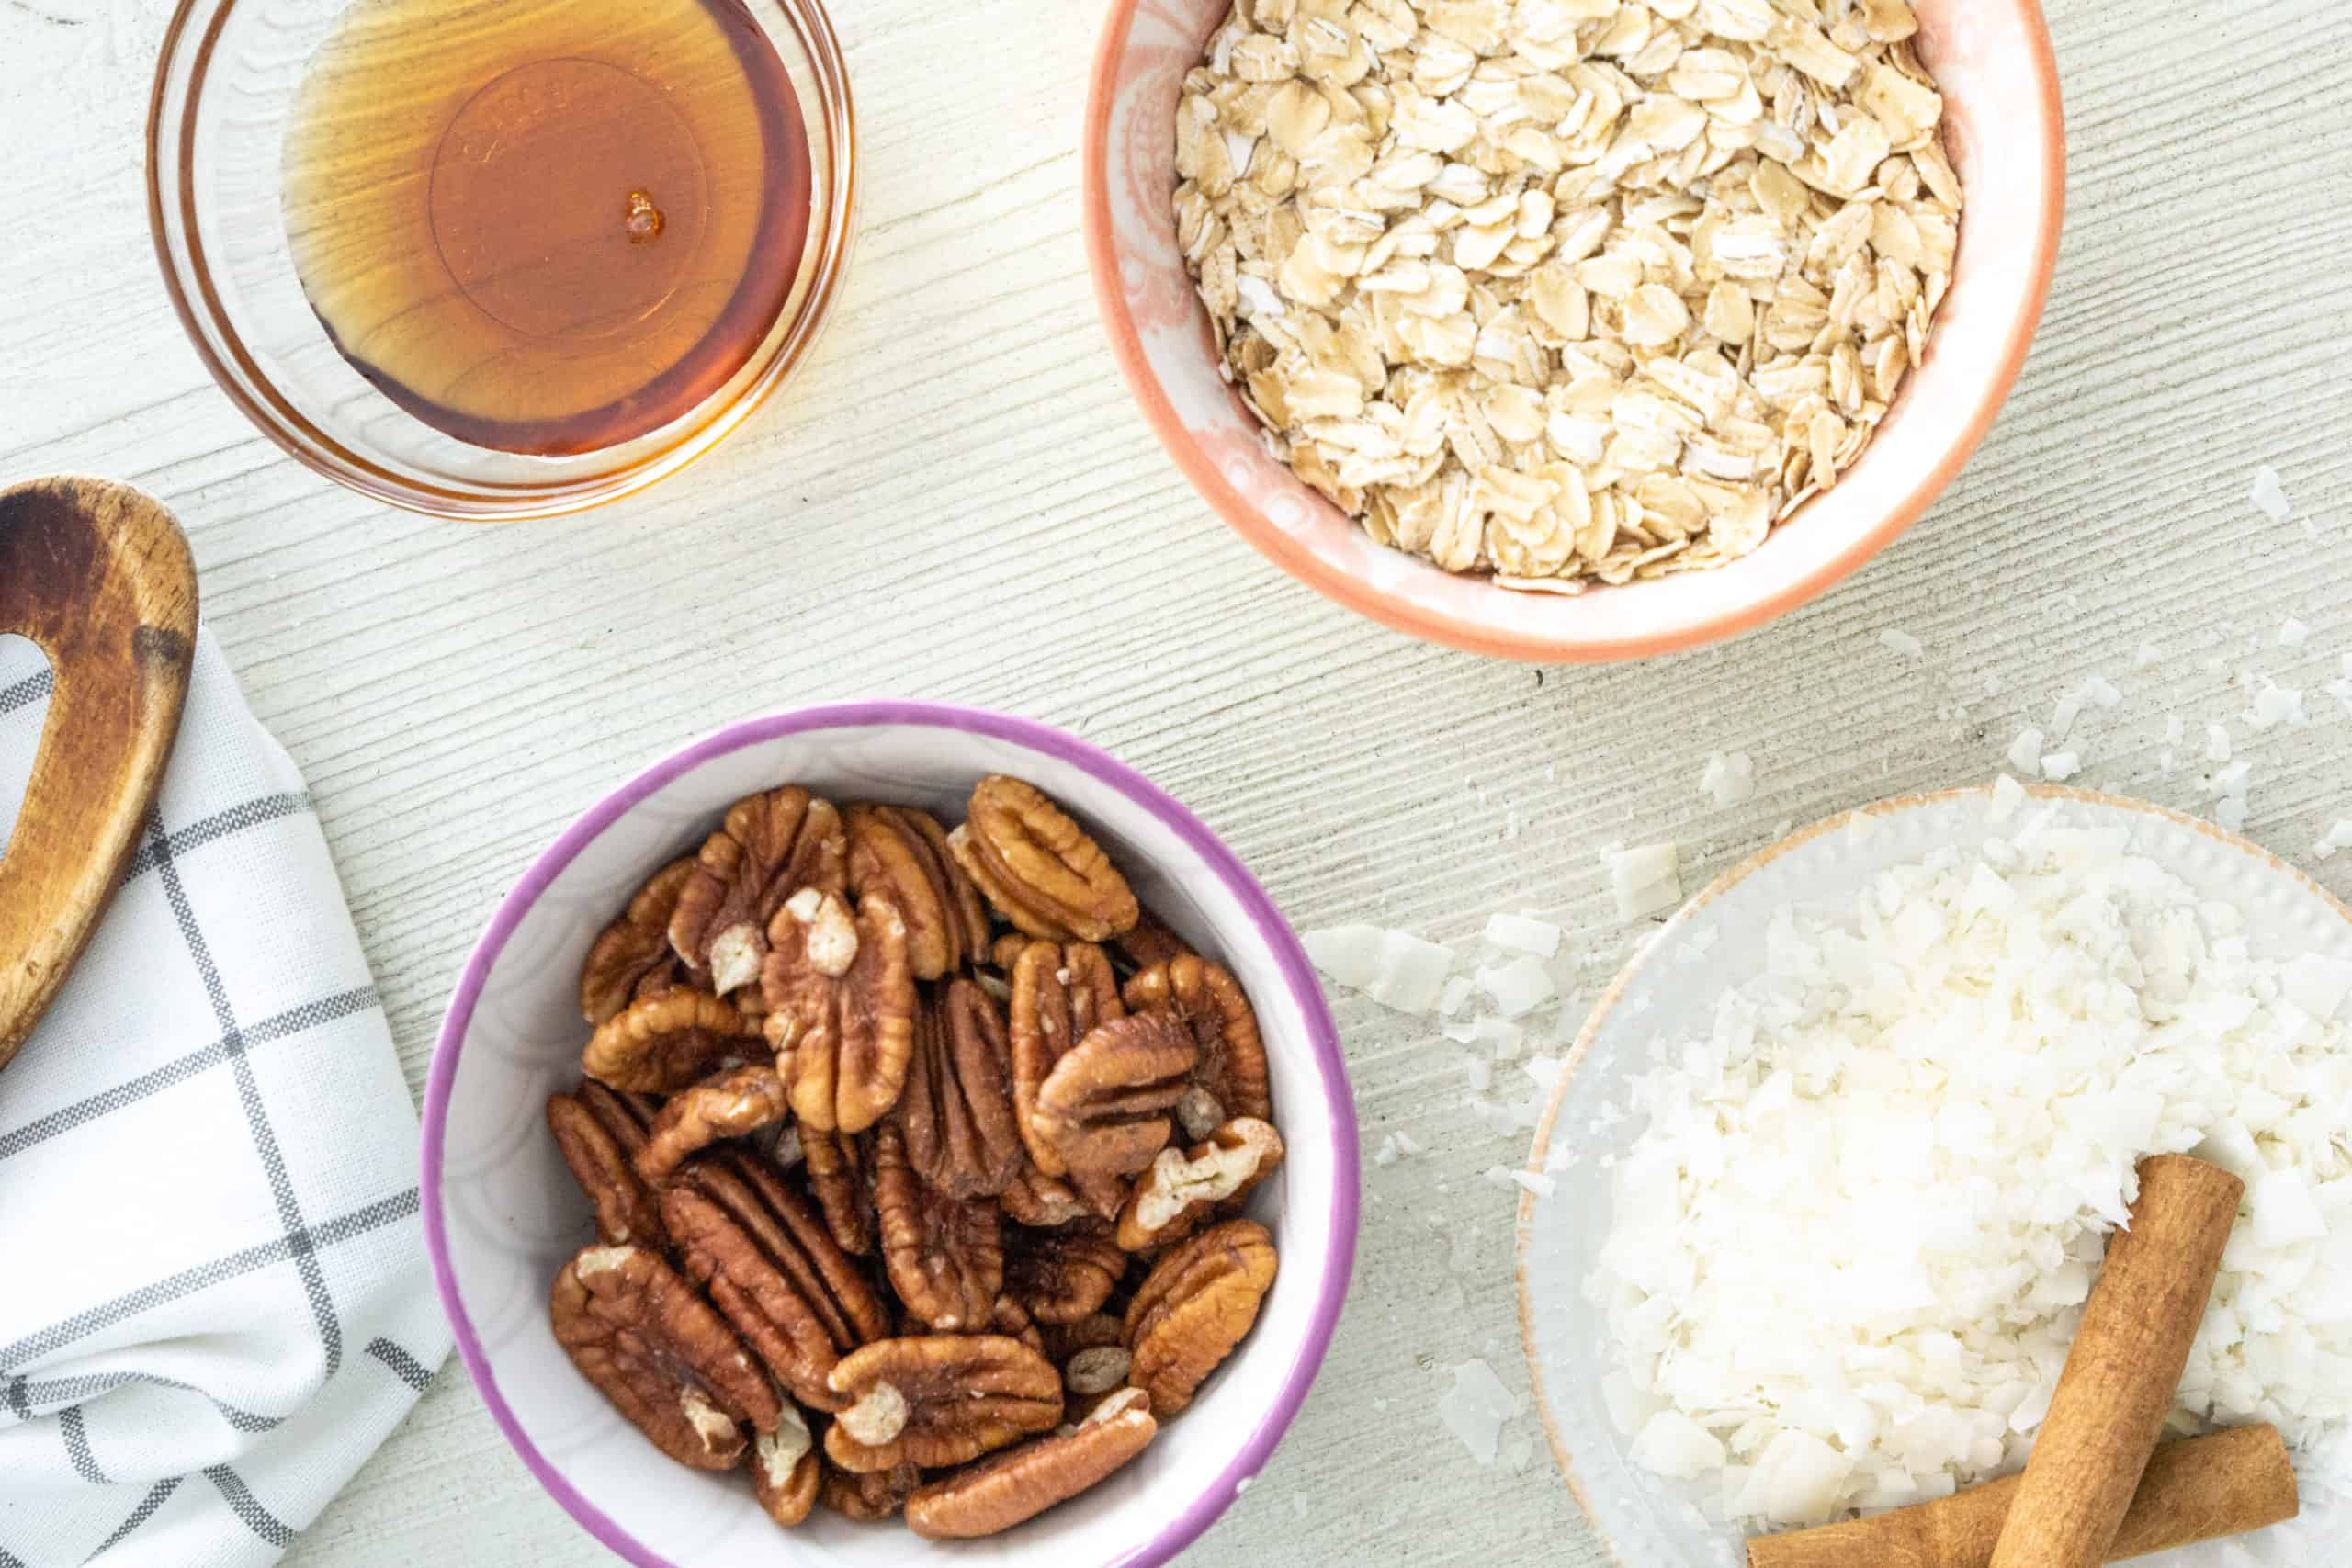 This homemade maple pecan granola is vegan, gluten free, and so easy to make.